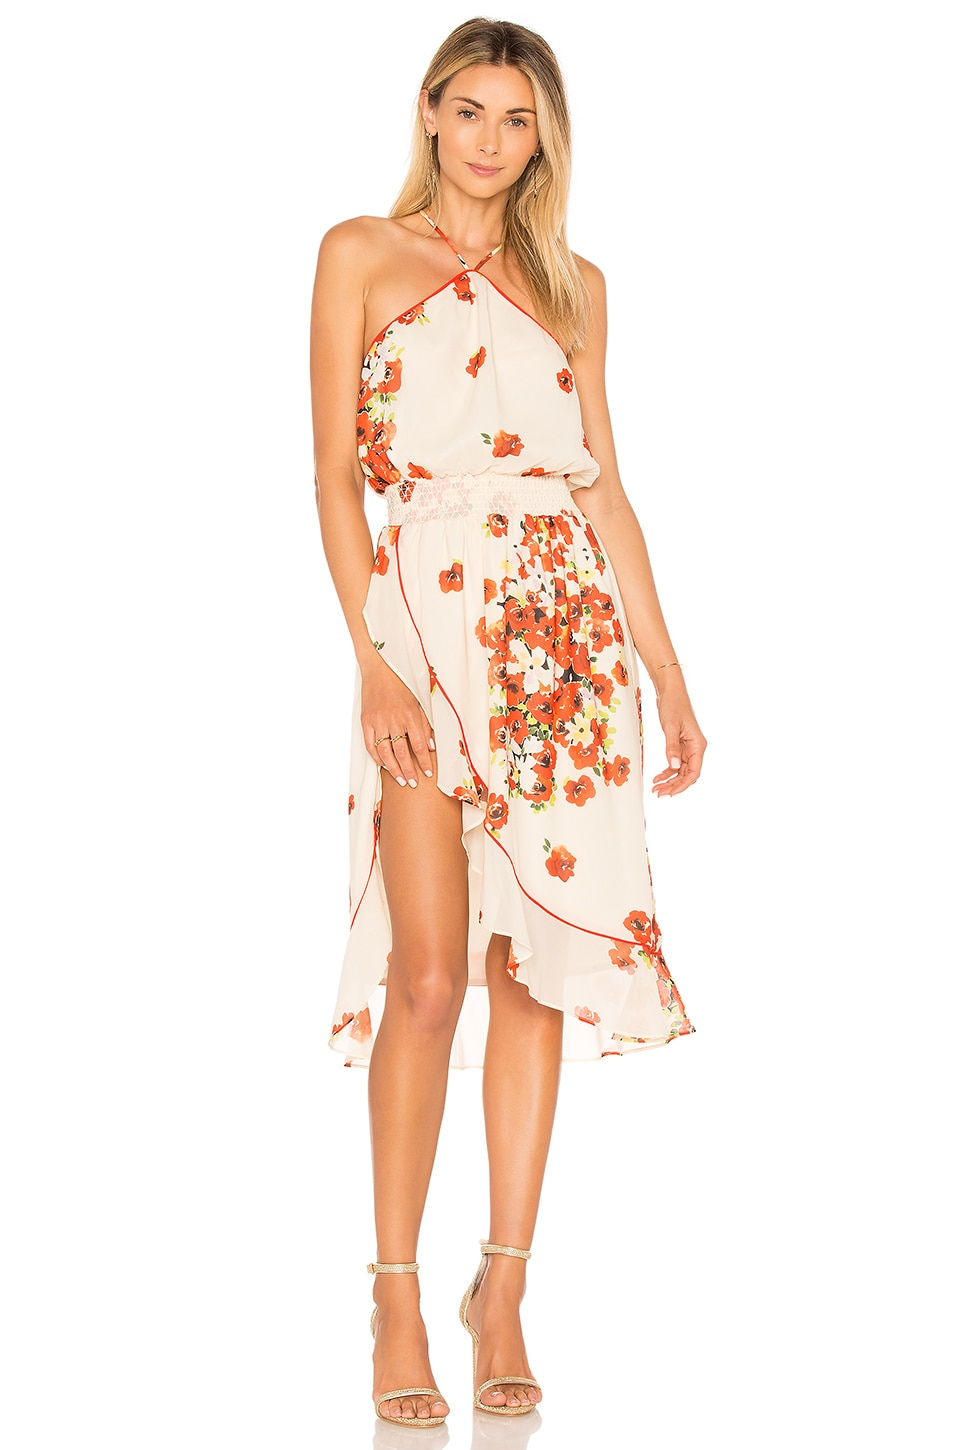 House of Harlow 1960 x REVOLVE Baye Midi in Poppy Floral